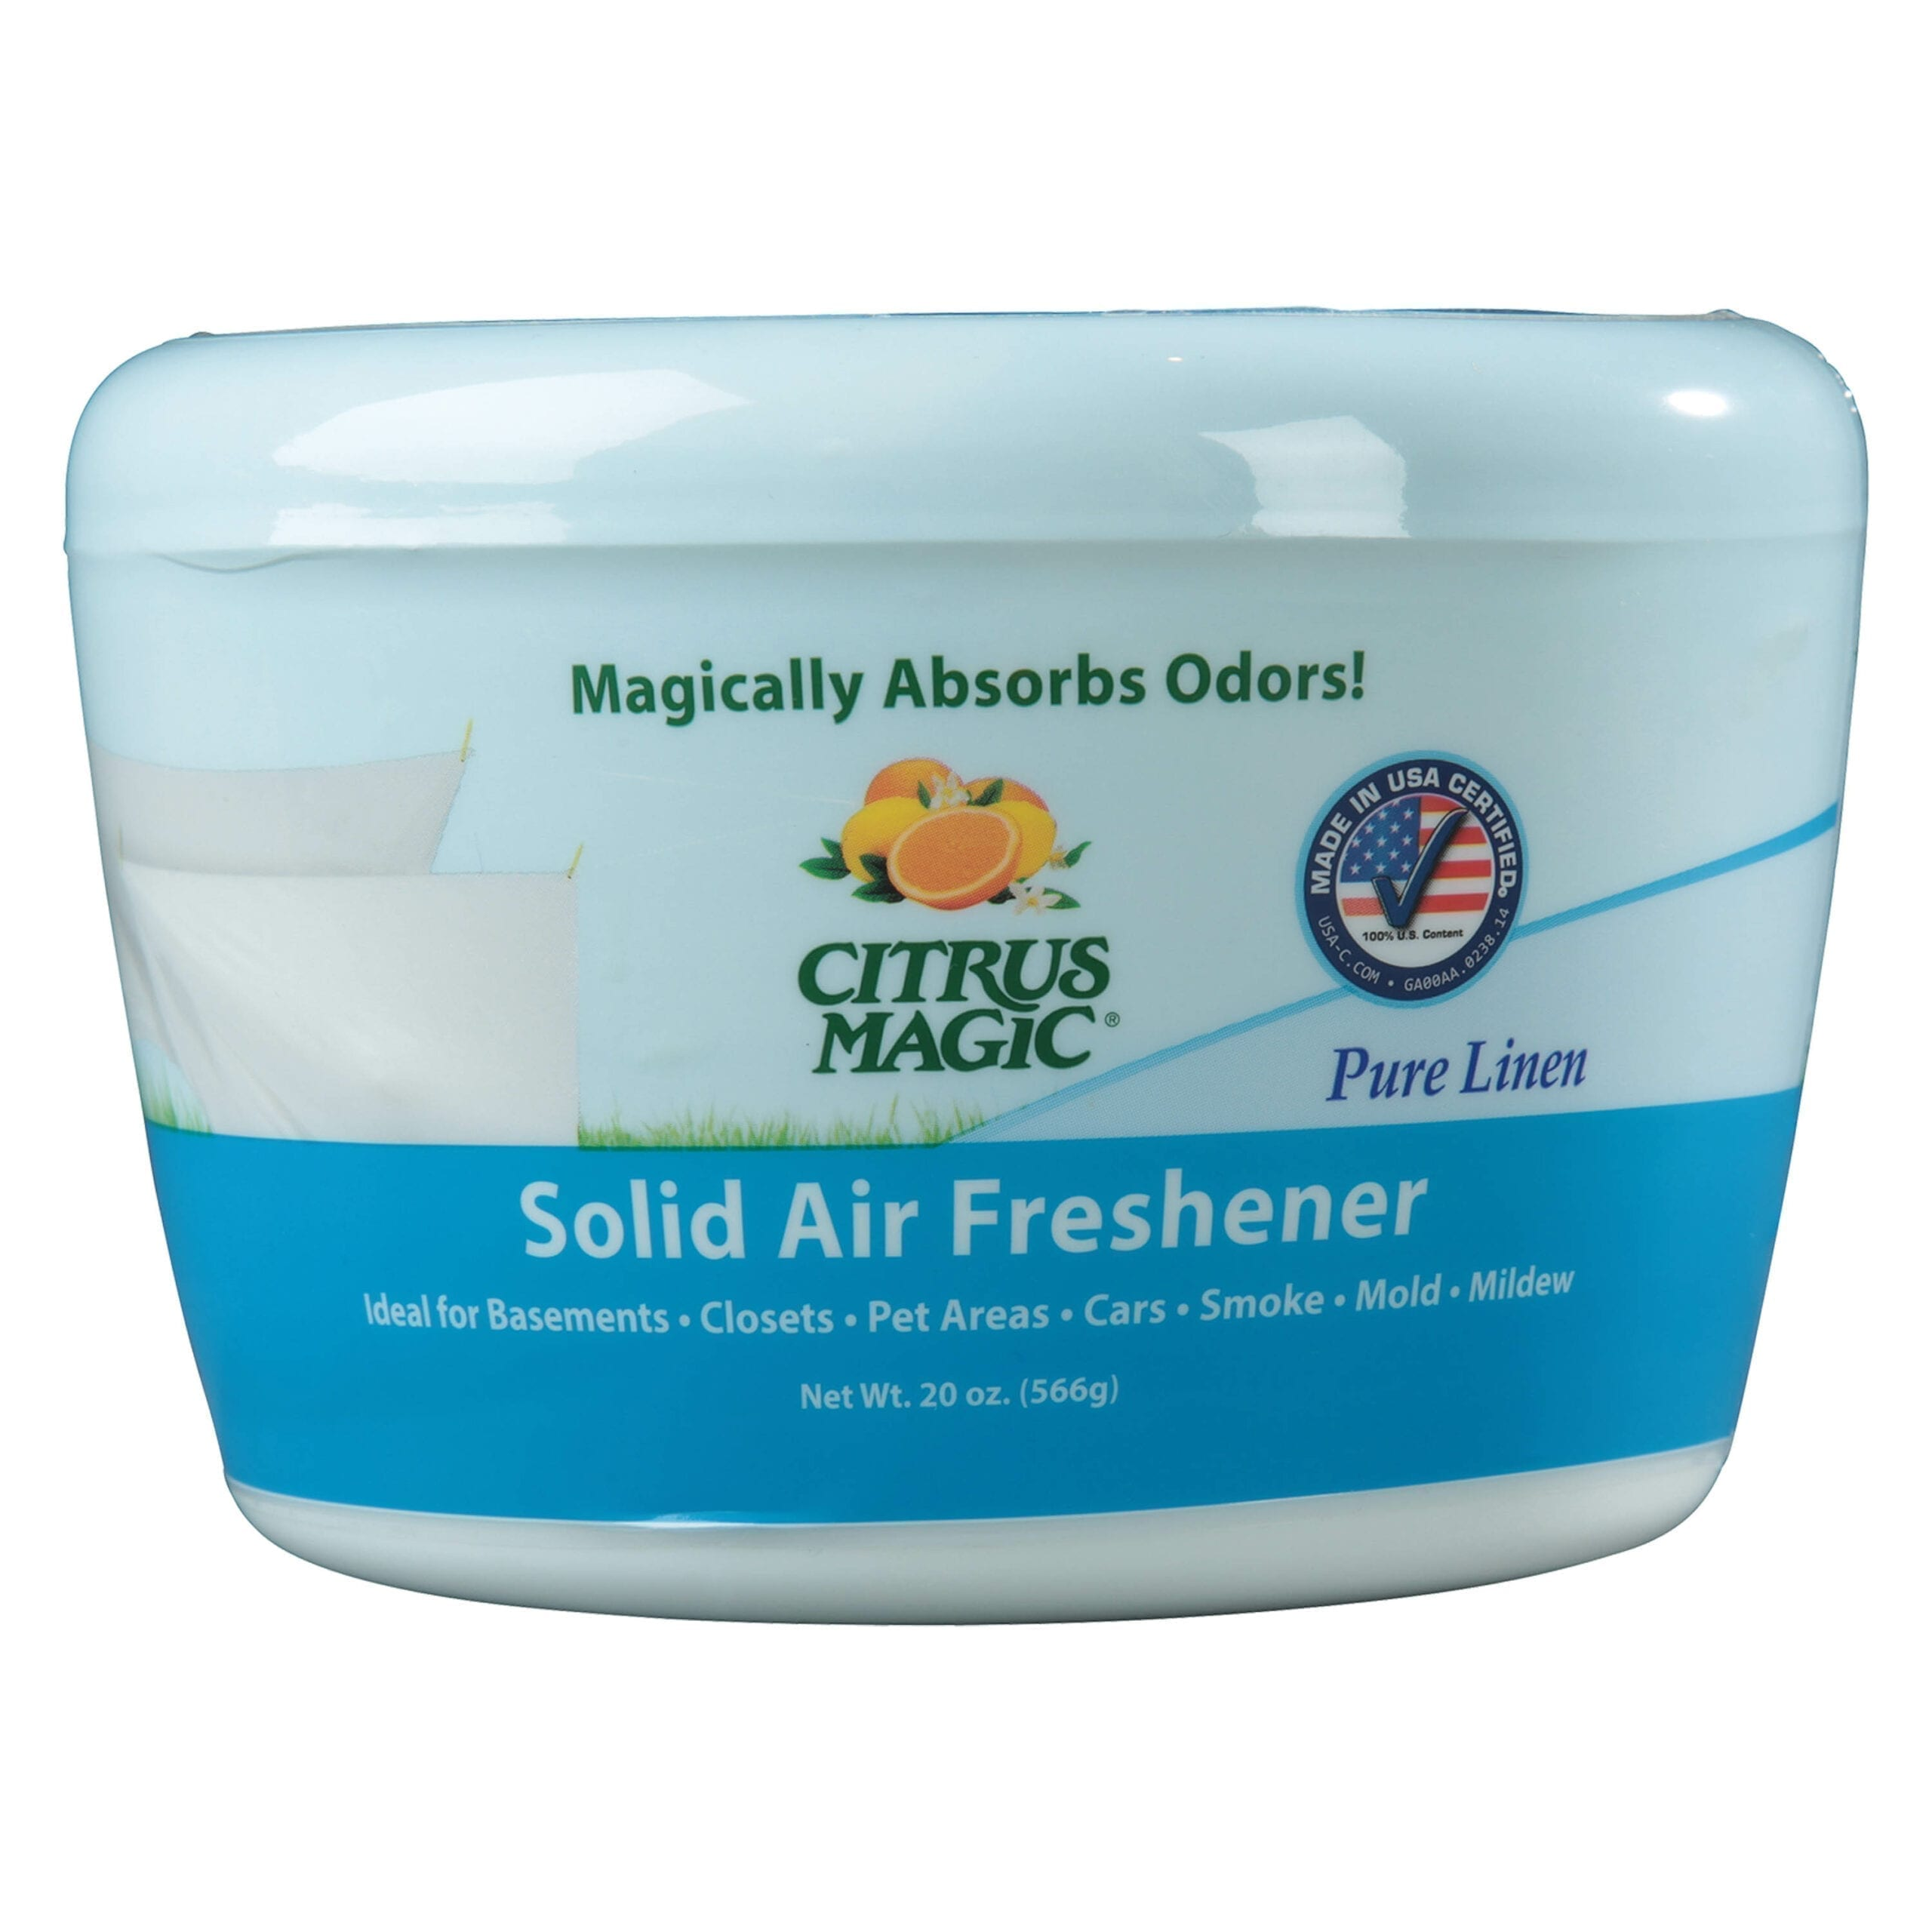 Citrus Magic Odor Absorbing Solid Air Freshener, Pure Linen